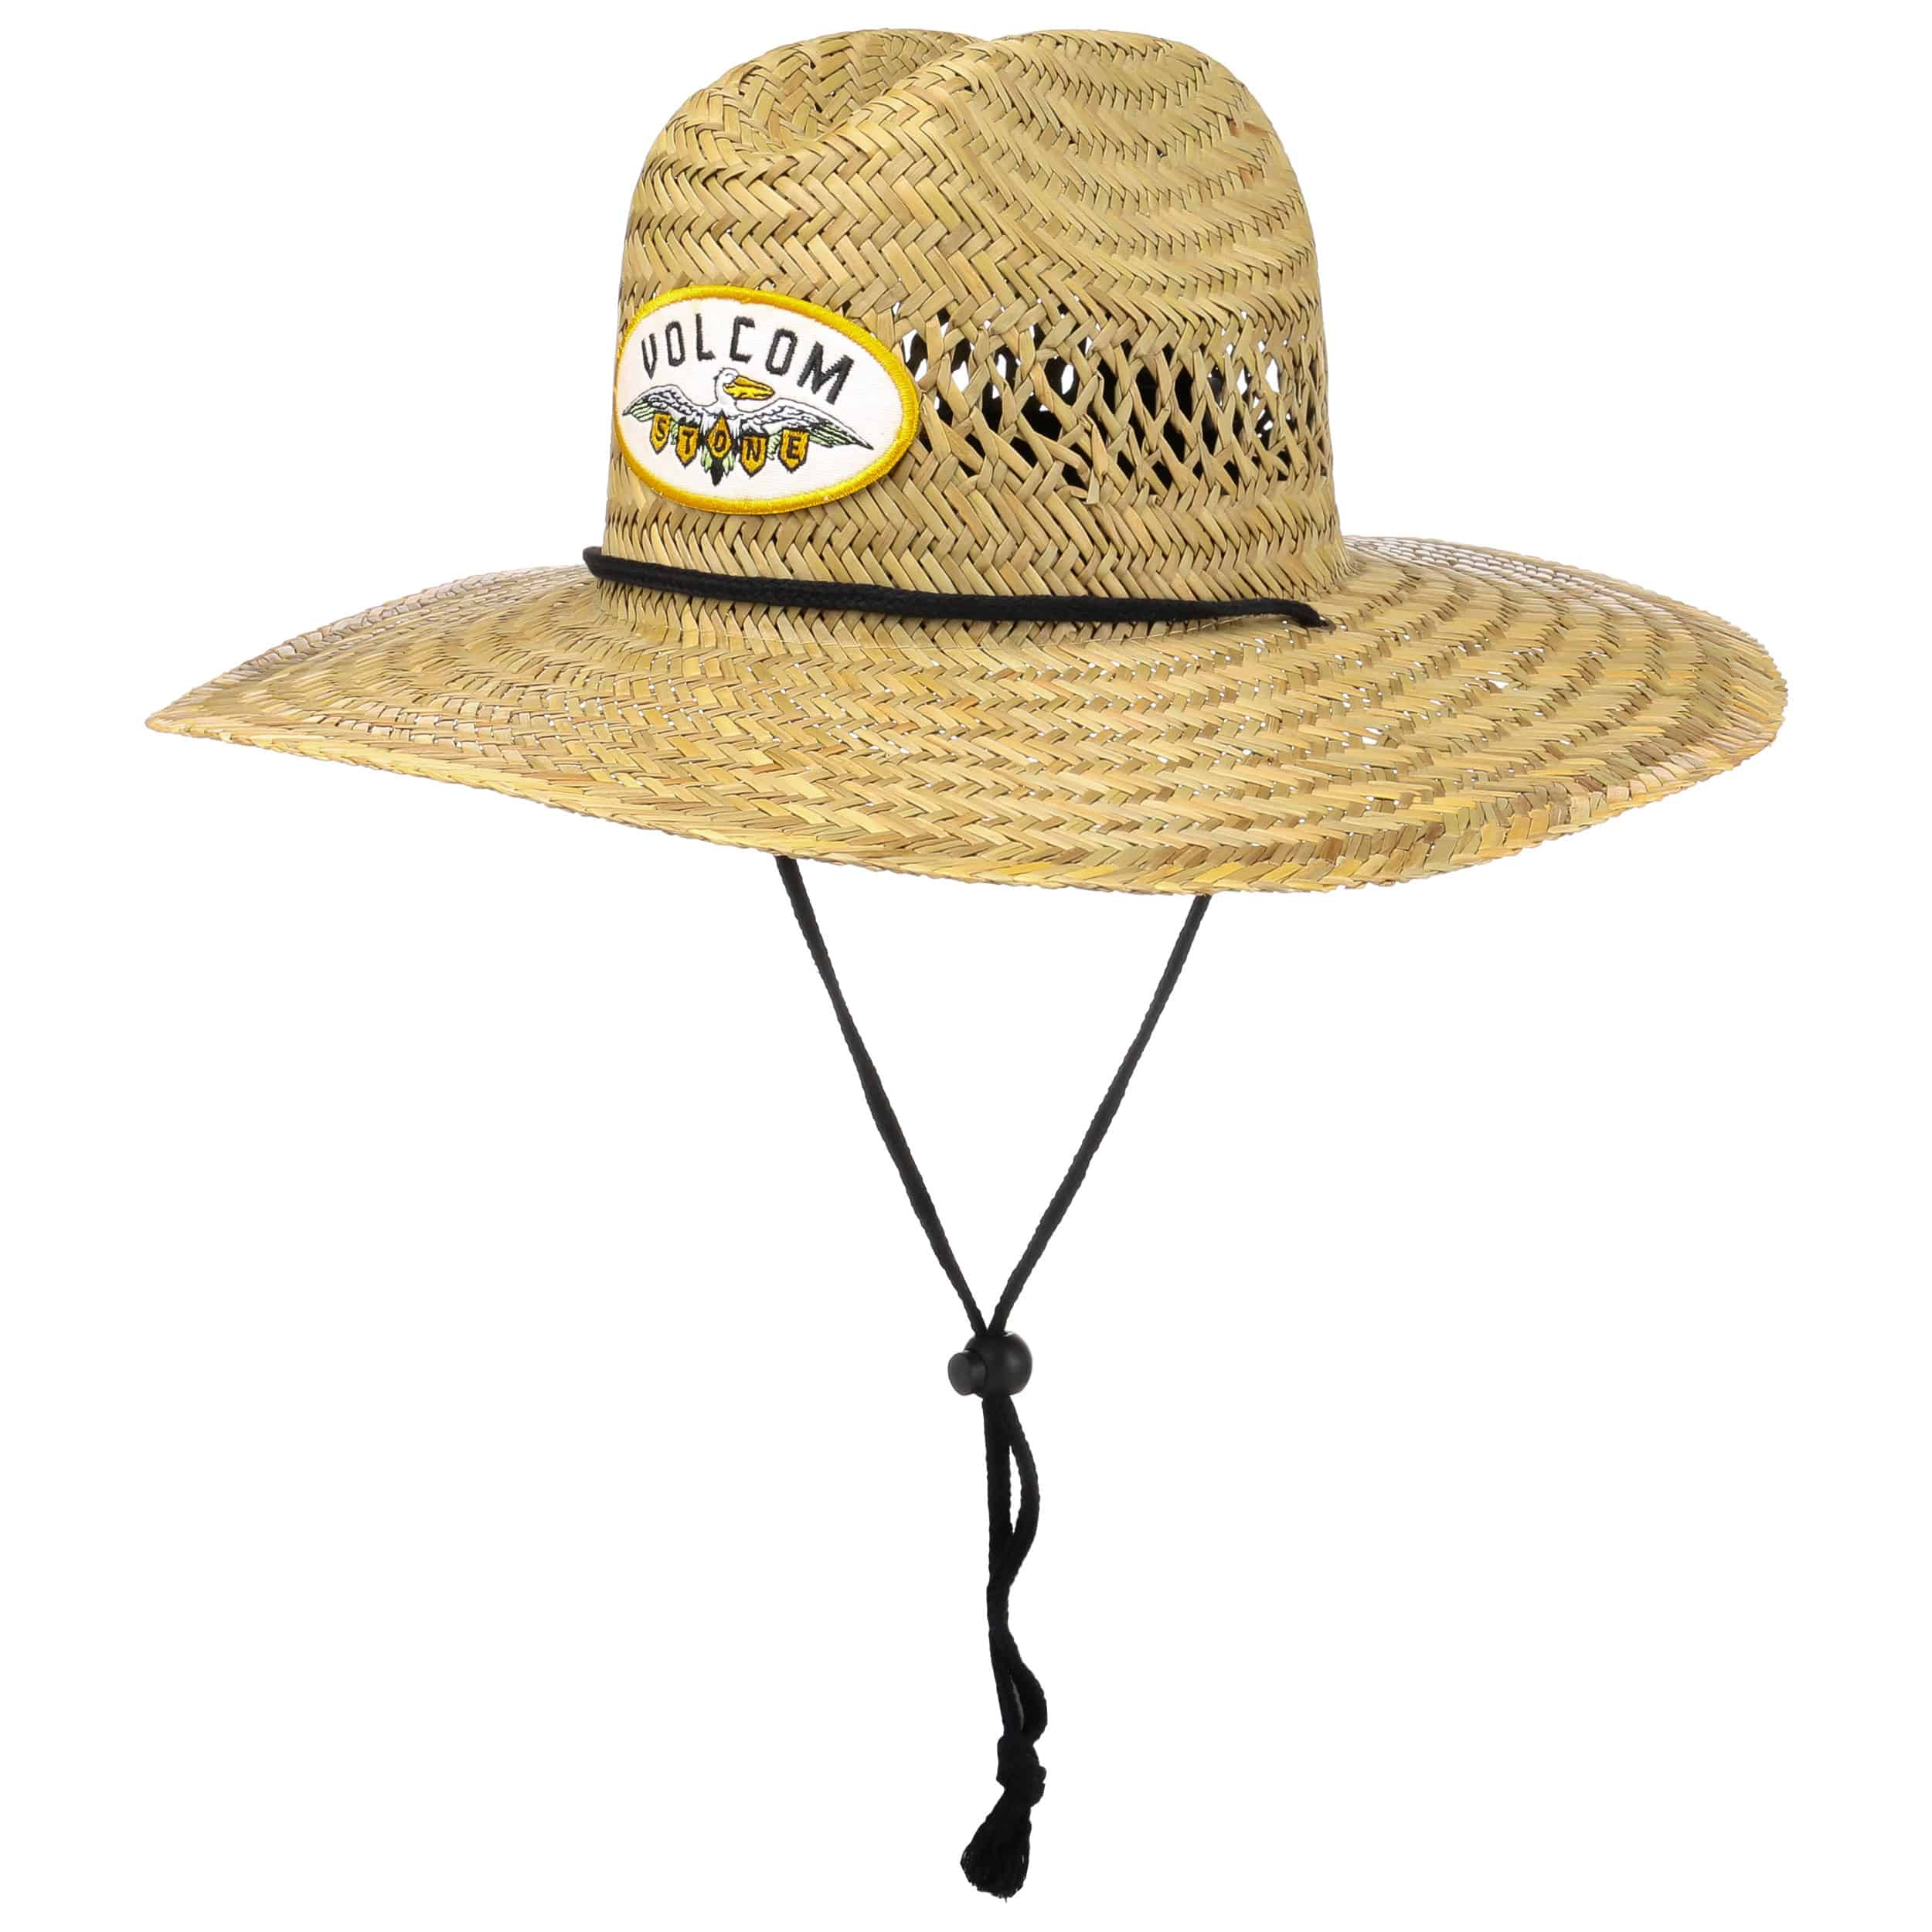 08db8e8a9e6 ... Hellican Straw Hat by Volcom - nature 5